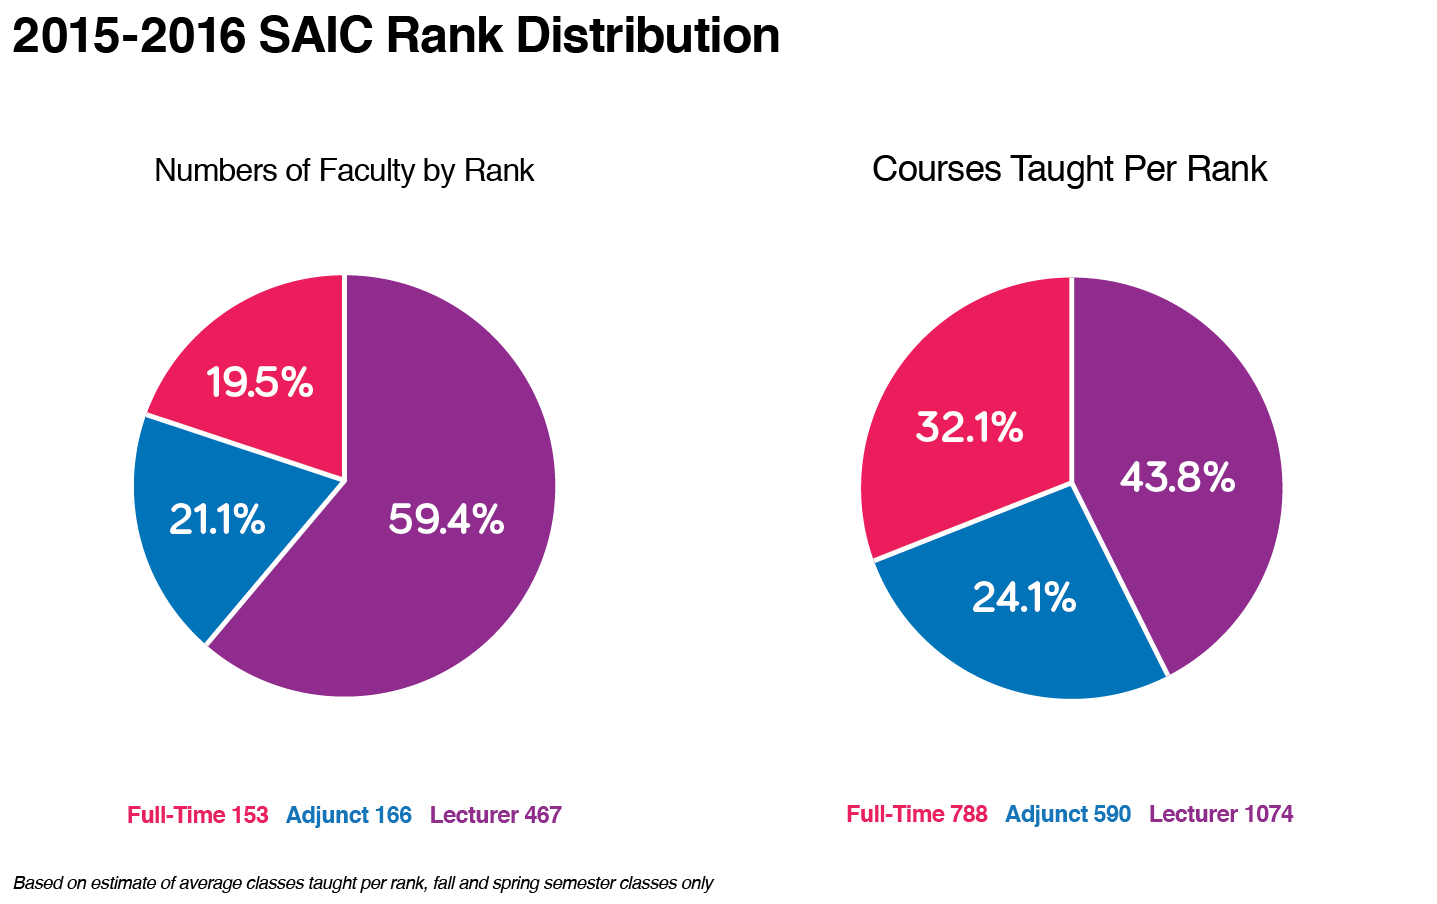 SAIC Rank Distribution